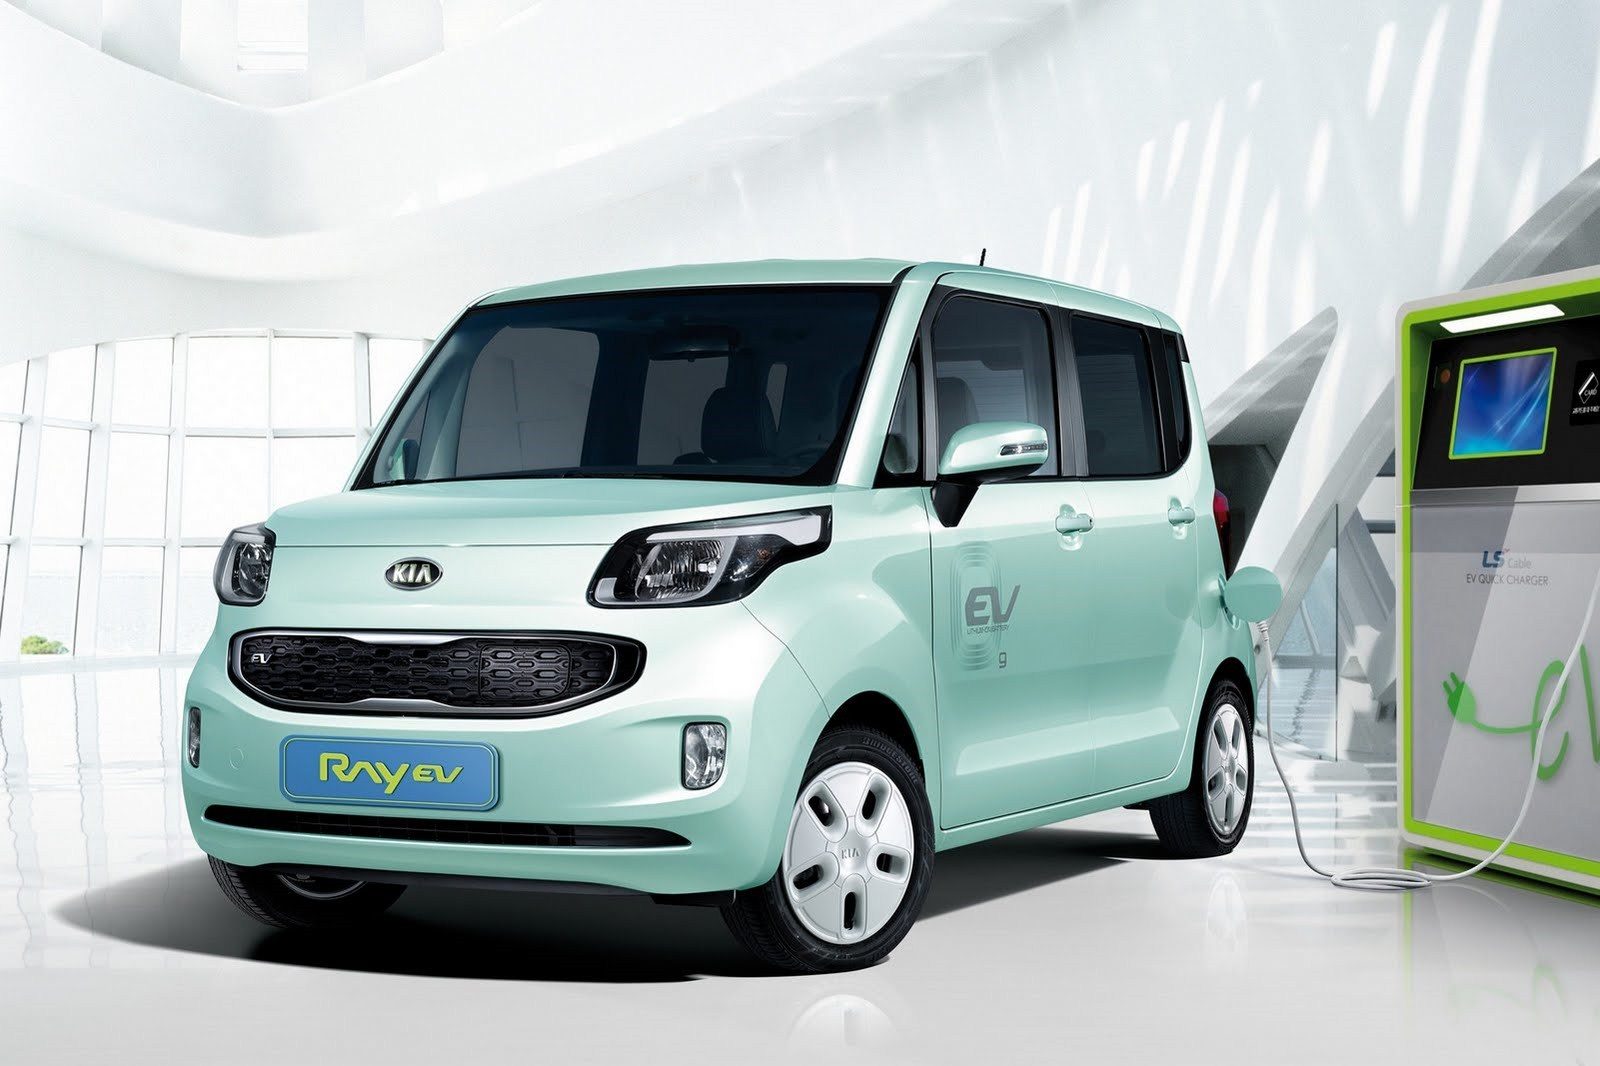 2014 kia soul ev car review car wallpaper collections gallery view. Black Bedroom Furniture Sets. Home Design Ideas